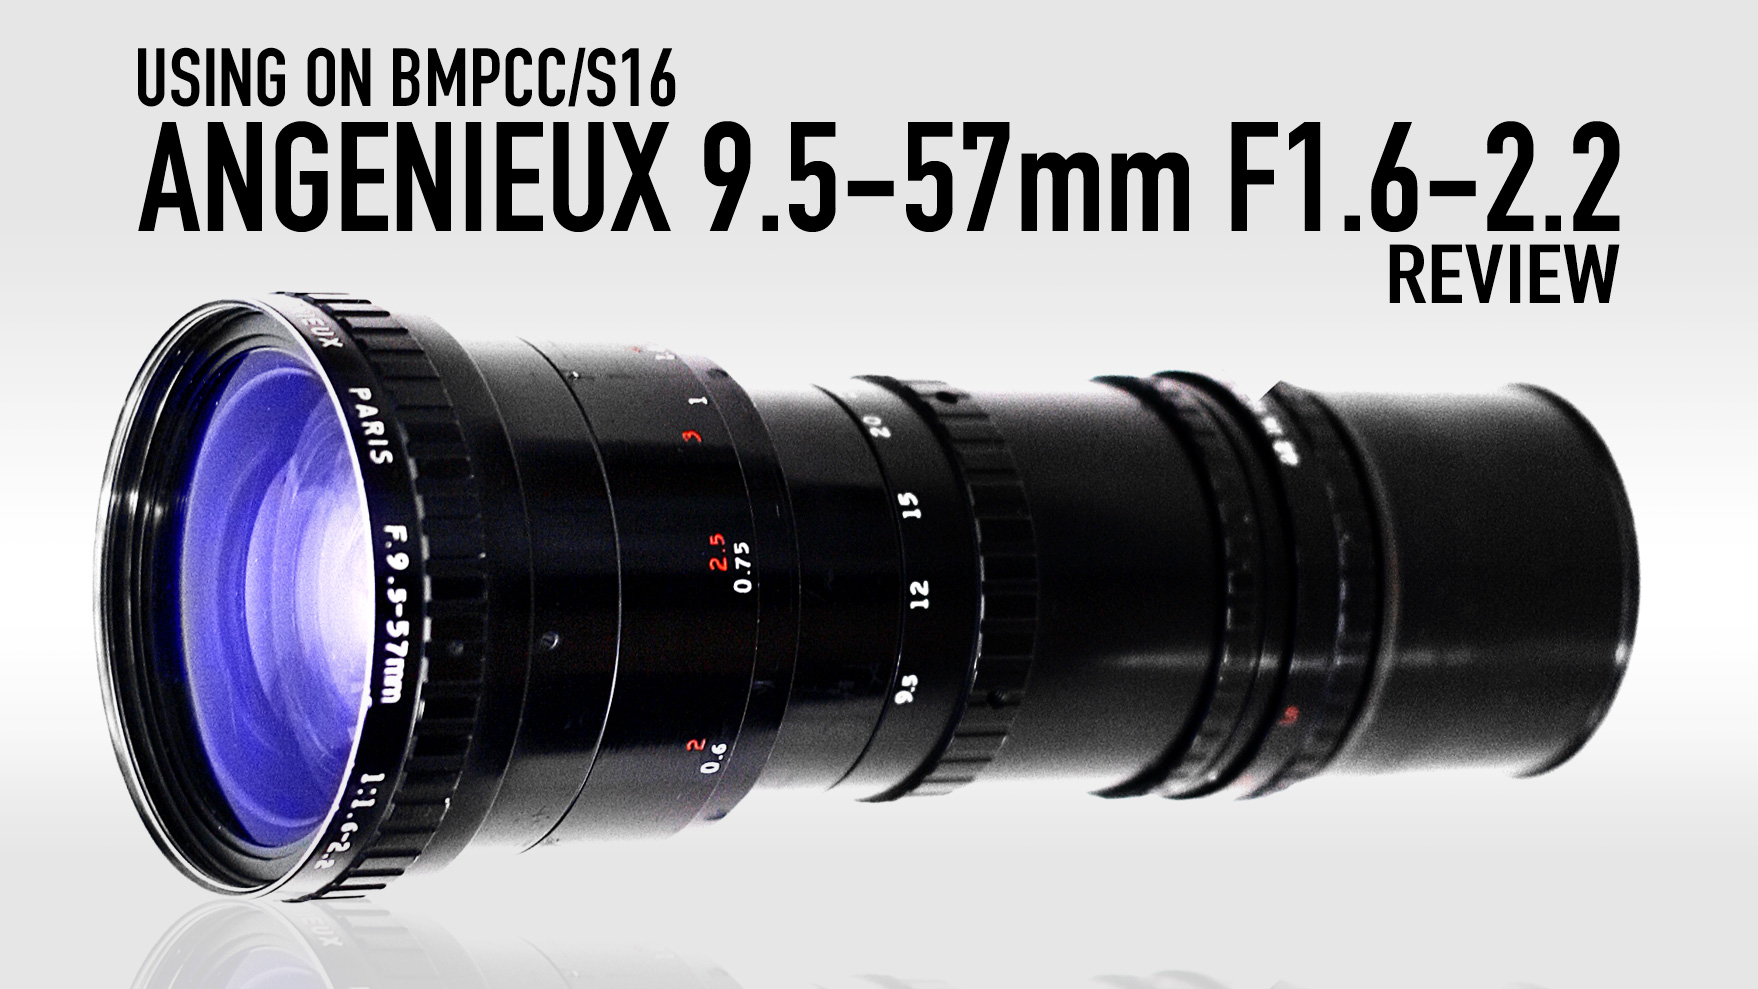 Using Angenieux 9.5-57mm F1.6-2.2 on BMPCC/S16 | In-depth REVIEW